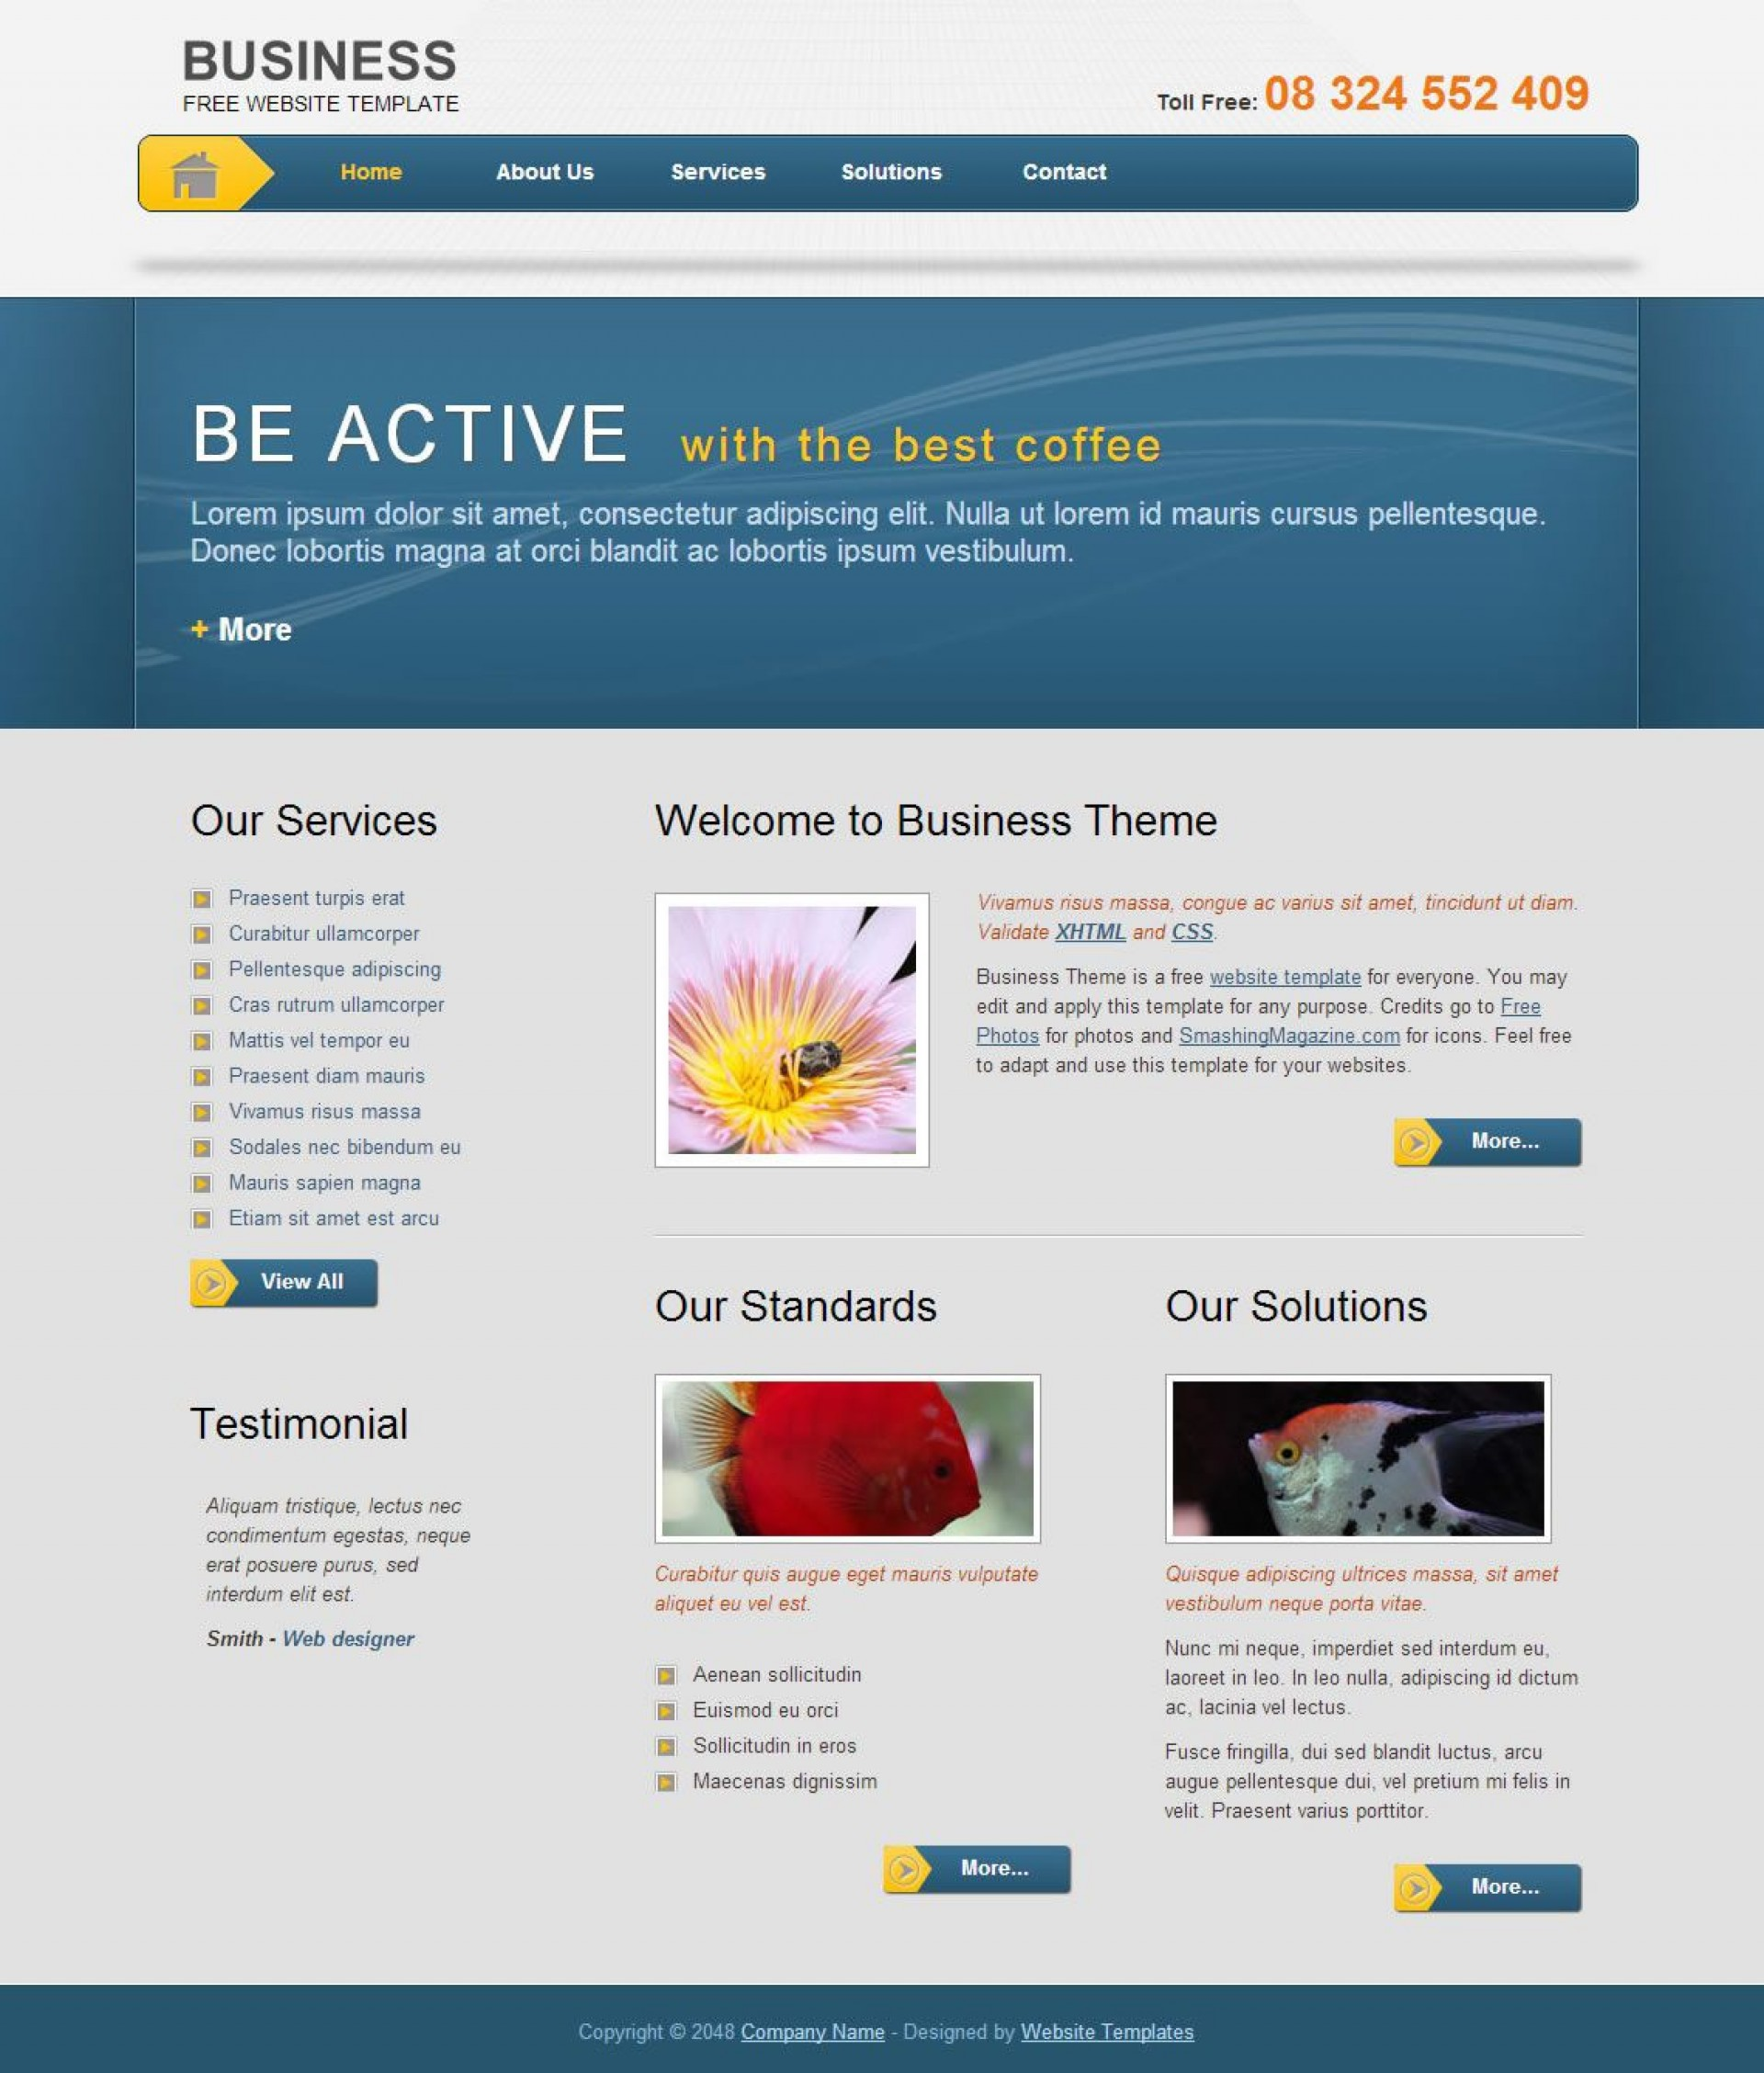 000 Fascinating Free Web Template Download Html And Cs For Busines Concept  Business Website Responsive With1920